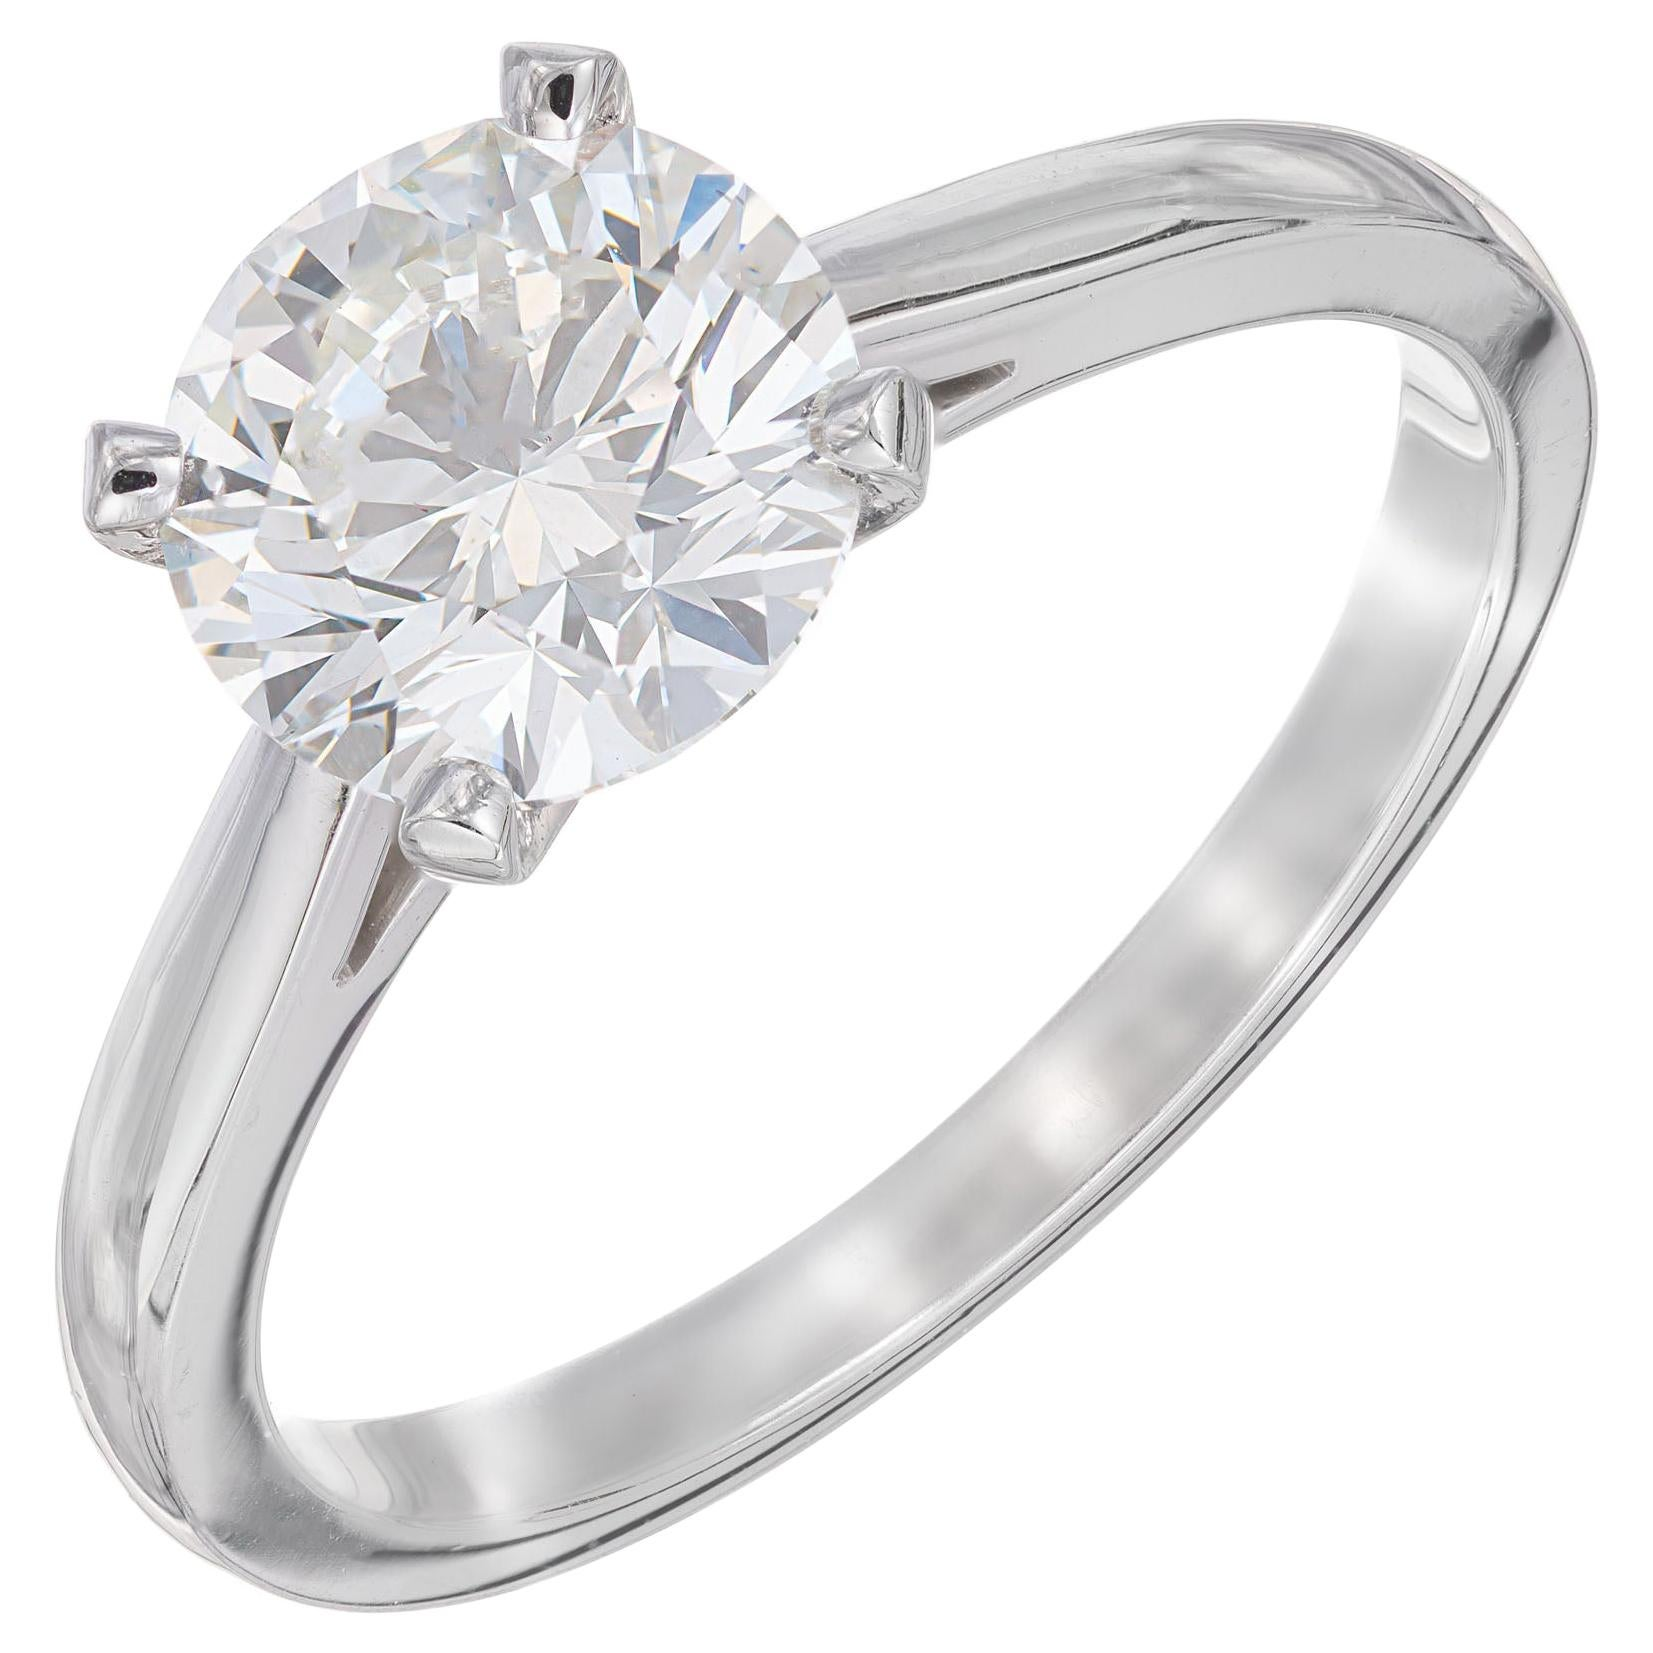 Peter Suchy GIA Certified 1.51 Carat Diamond Platinum Solitaire Engagement Ring